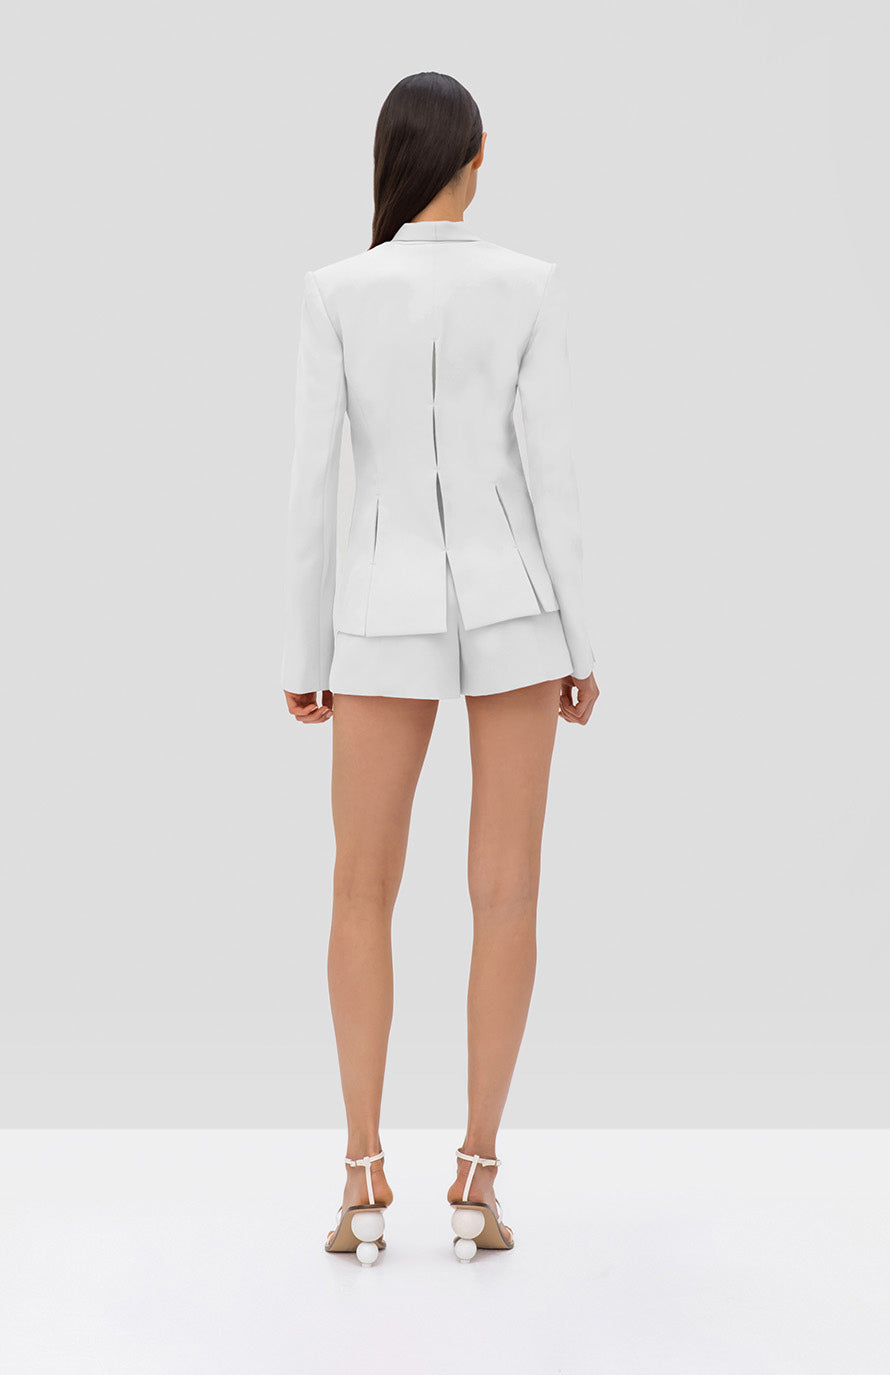 Alexis Vaska Blazer and Mikli Short White - Rear View